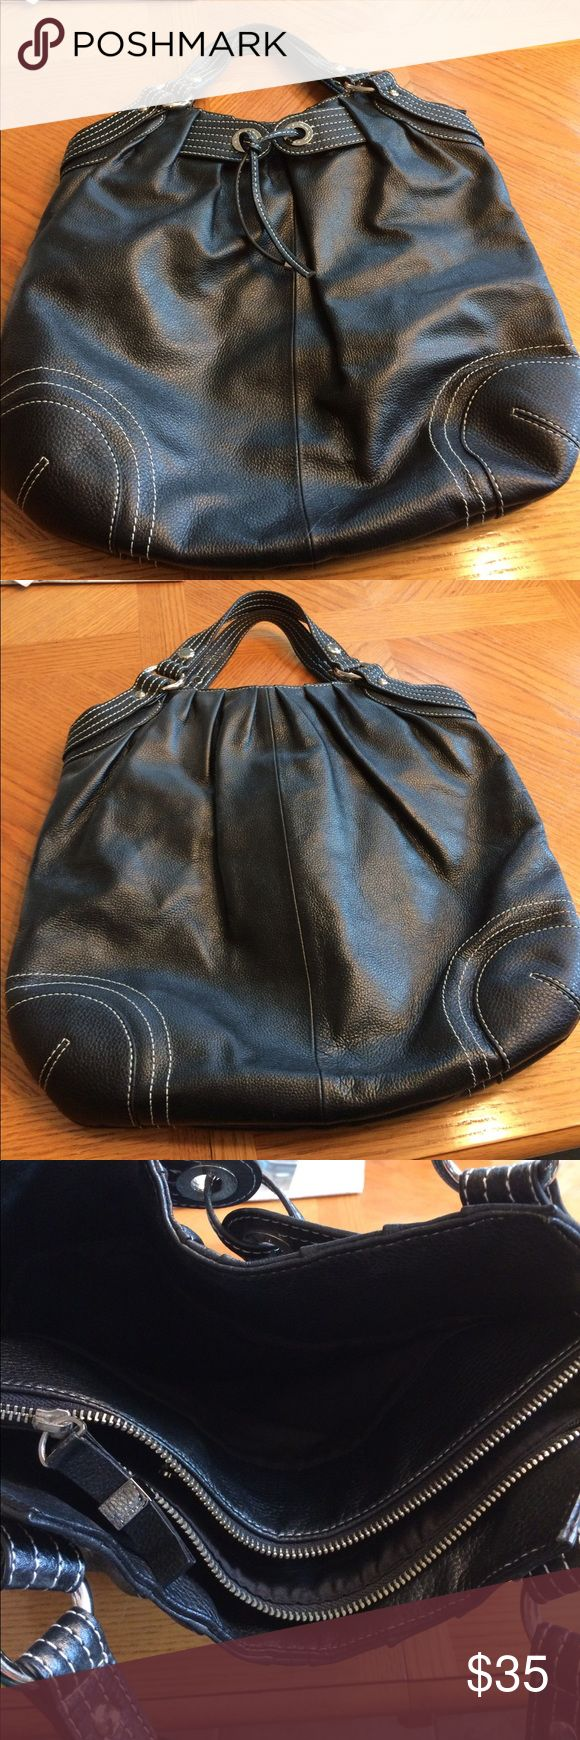 Via Spiga Large Black Tote Bag Via Spiga large black tote with contrast white stitching. Bag would be in almost perfect condition except for missing silver accent at bottom of cord (as seen in last picture). Priced to sell!!! Via Spiga Bags Totes